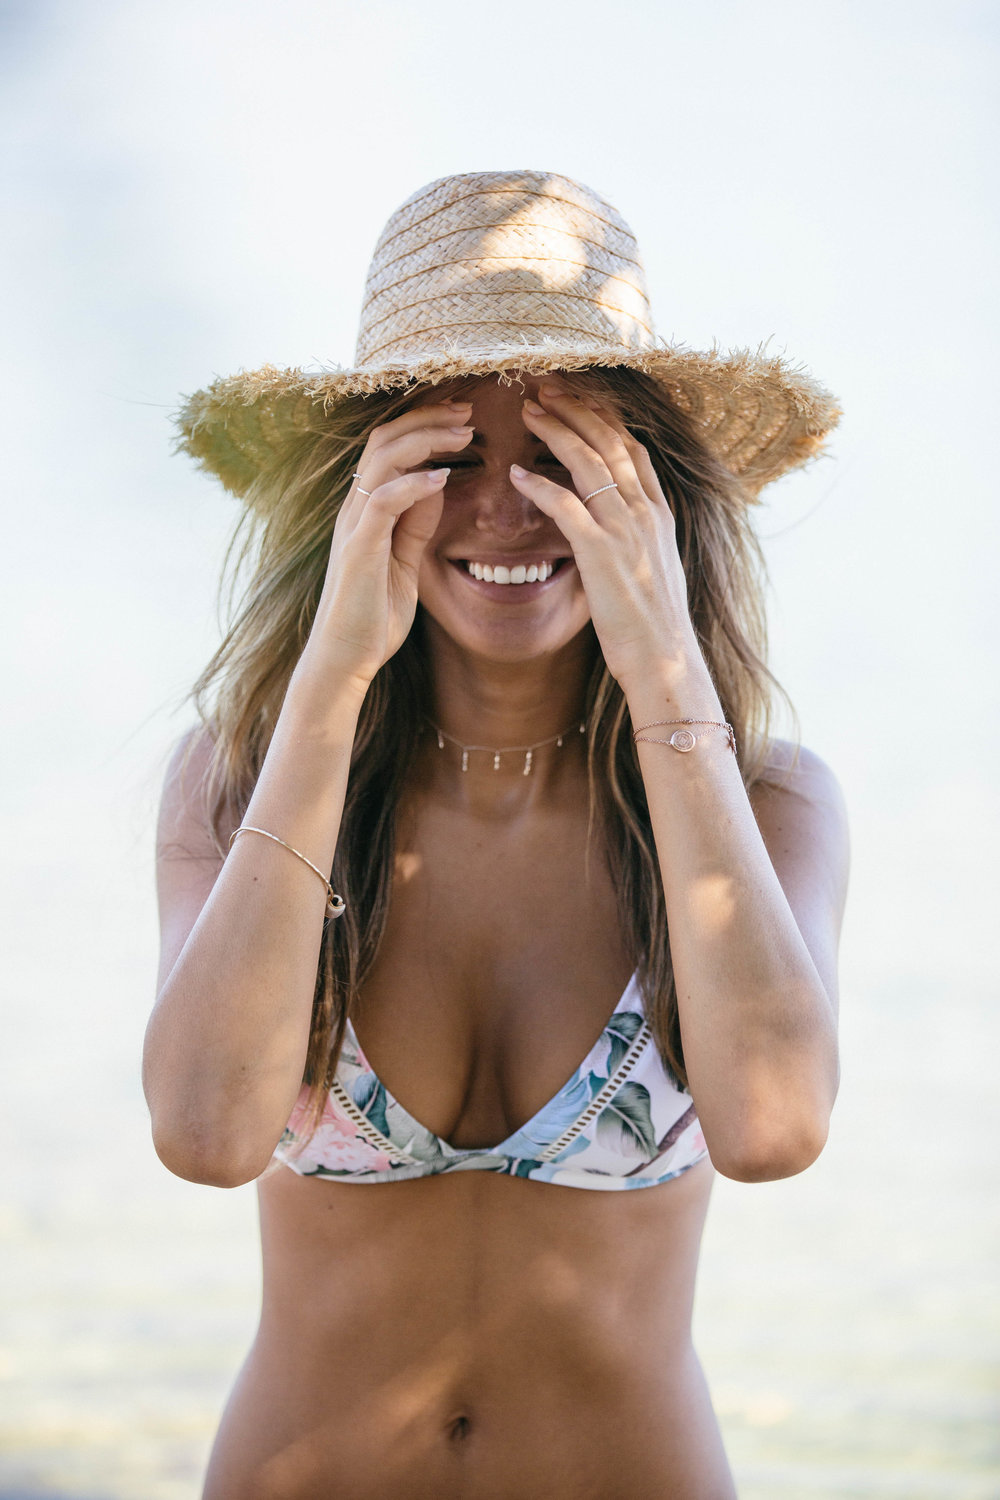 Islander Bralette Top Seashell and Sun Hat 2.jpg